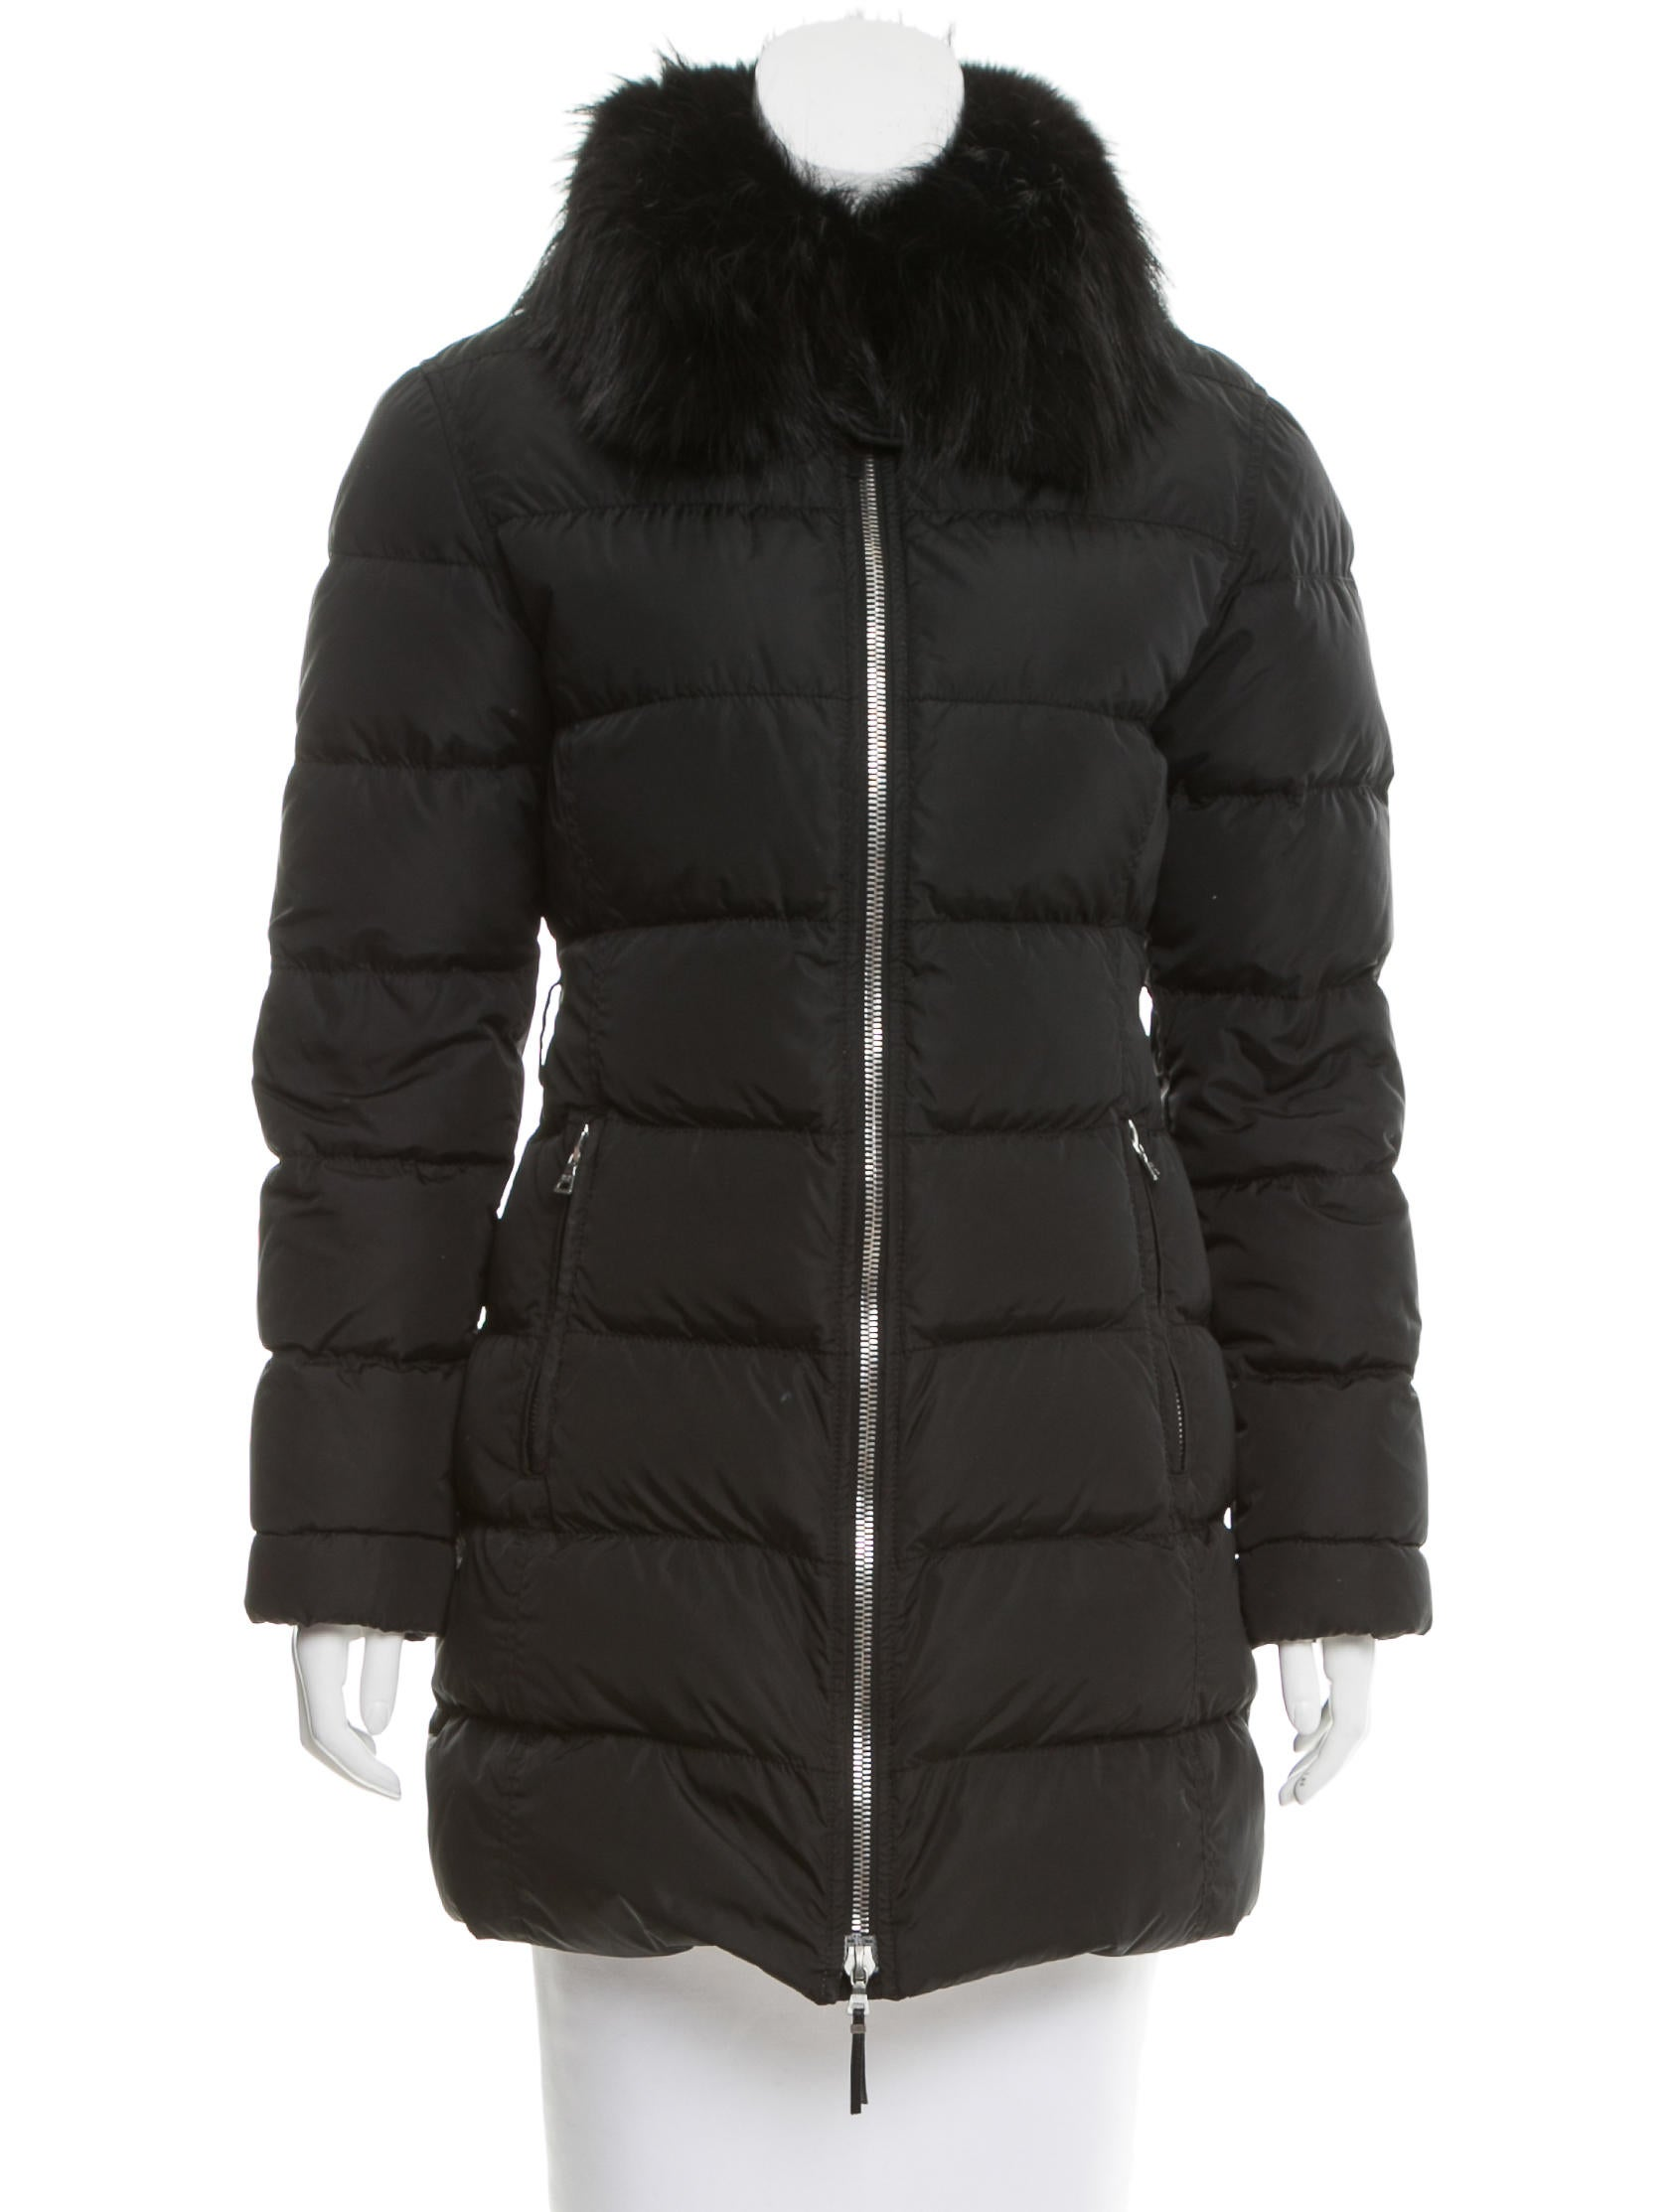 ALERT! It's the Summer sale you have been waiting for. This shopping deal on via spiga women's faux fur trimmed down coat, black, s for $